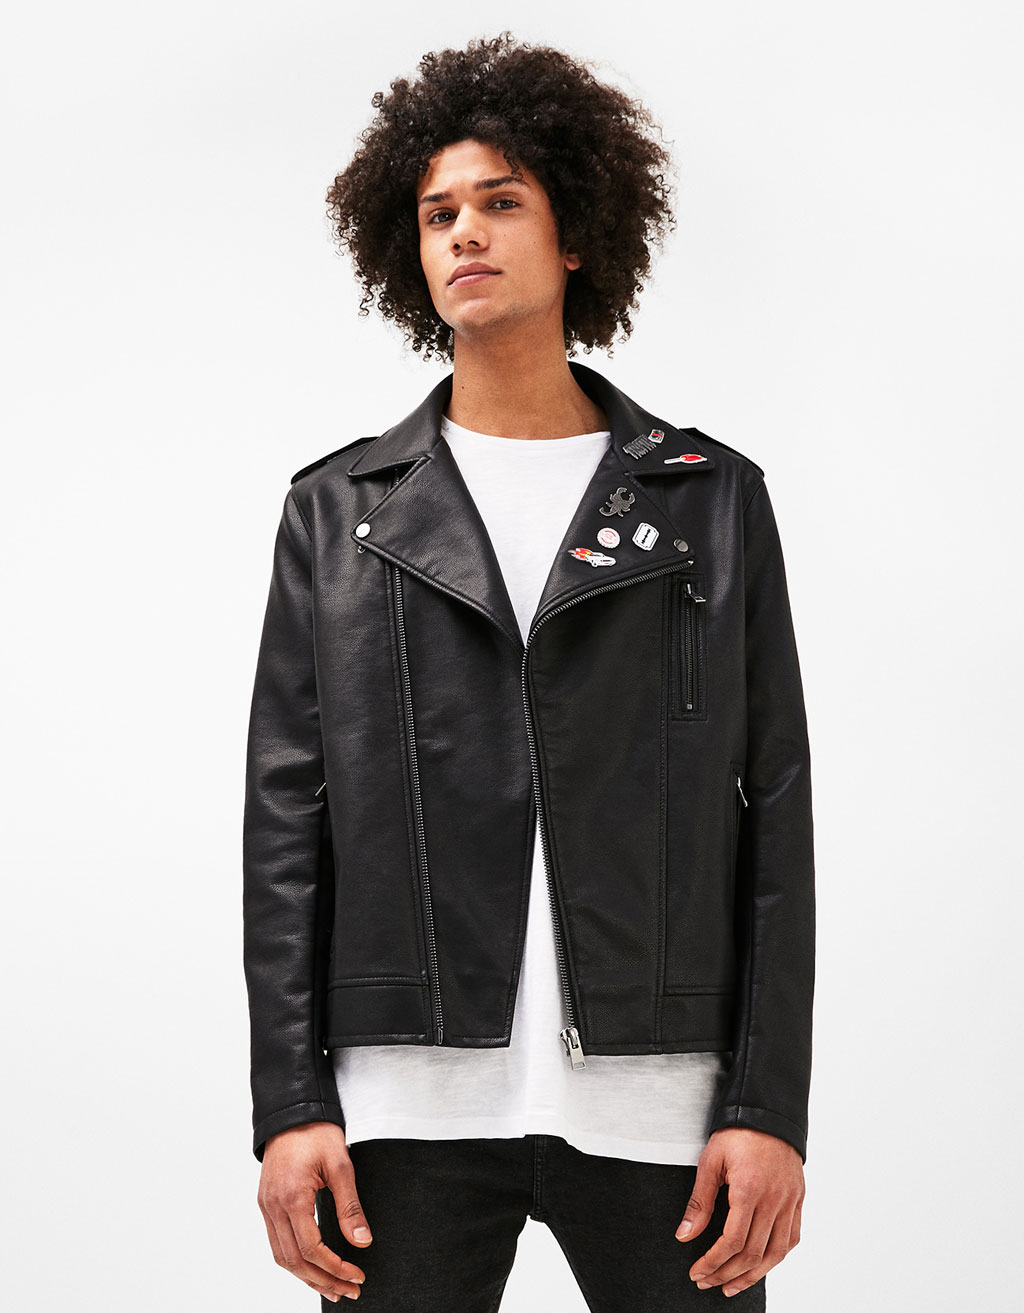 Biker jacket with badges